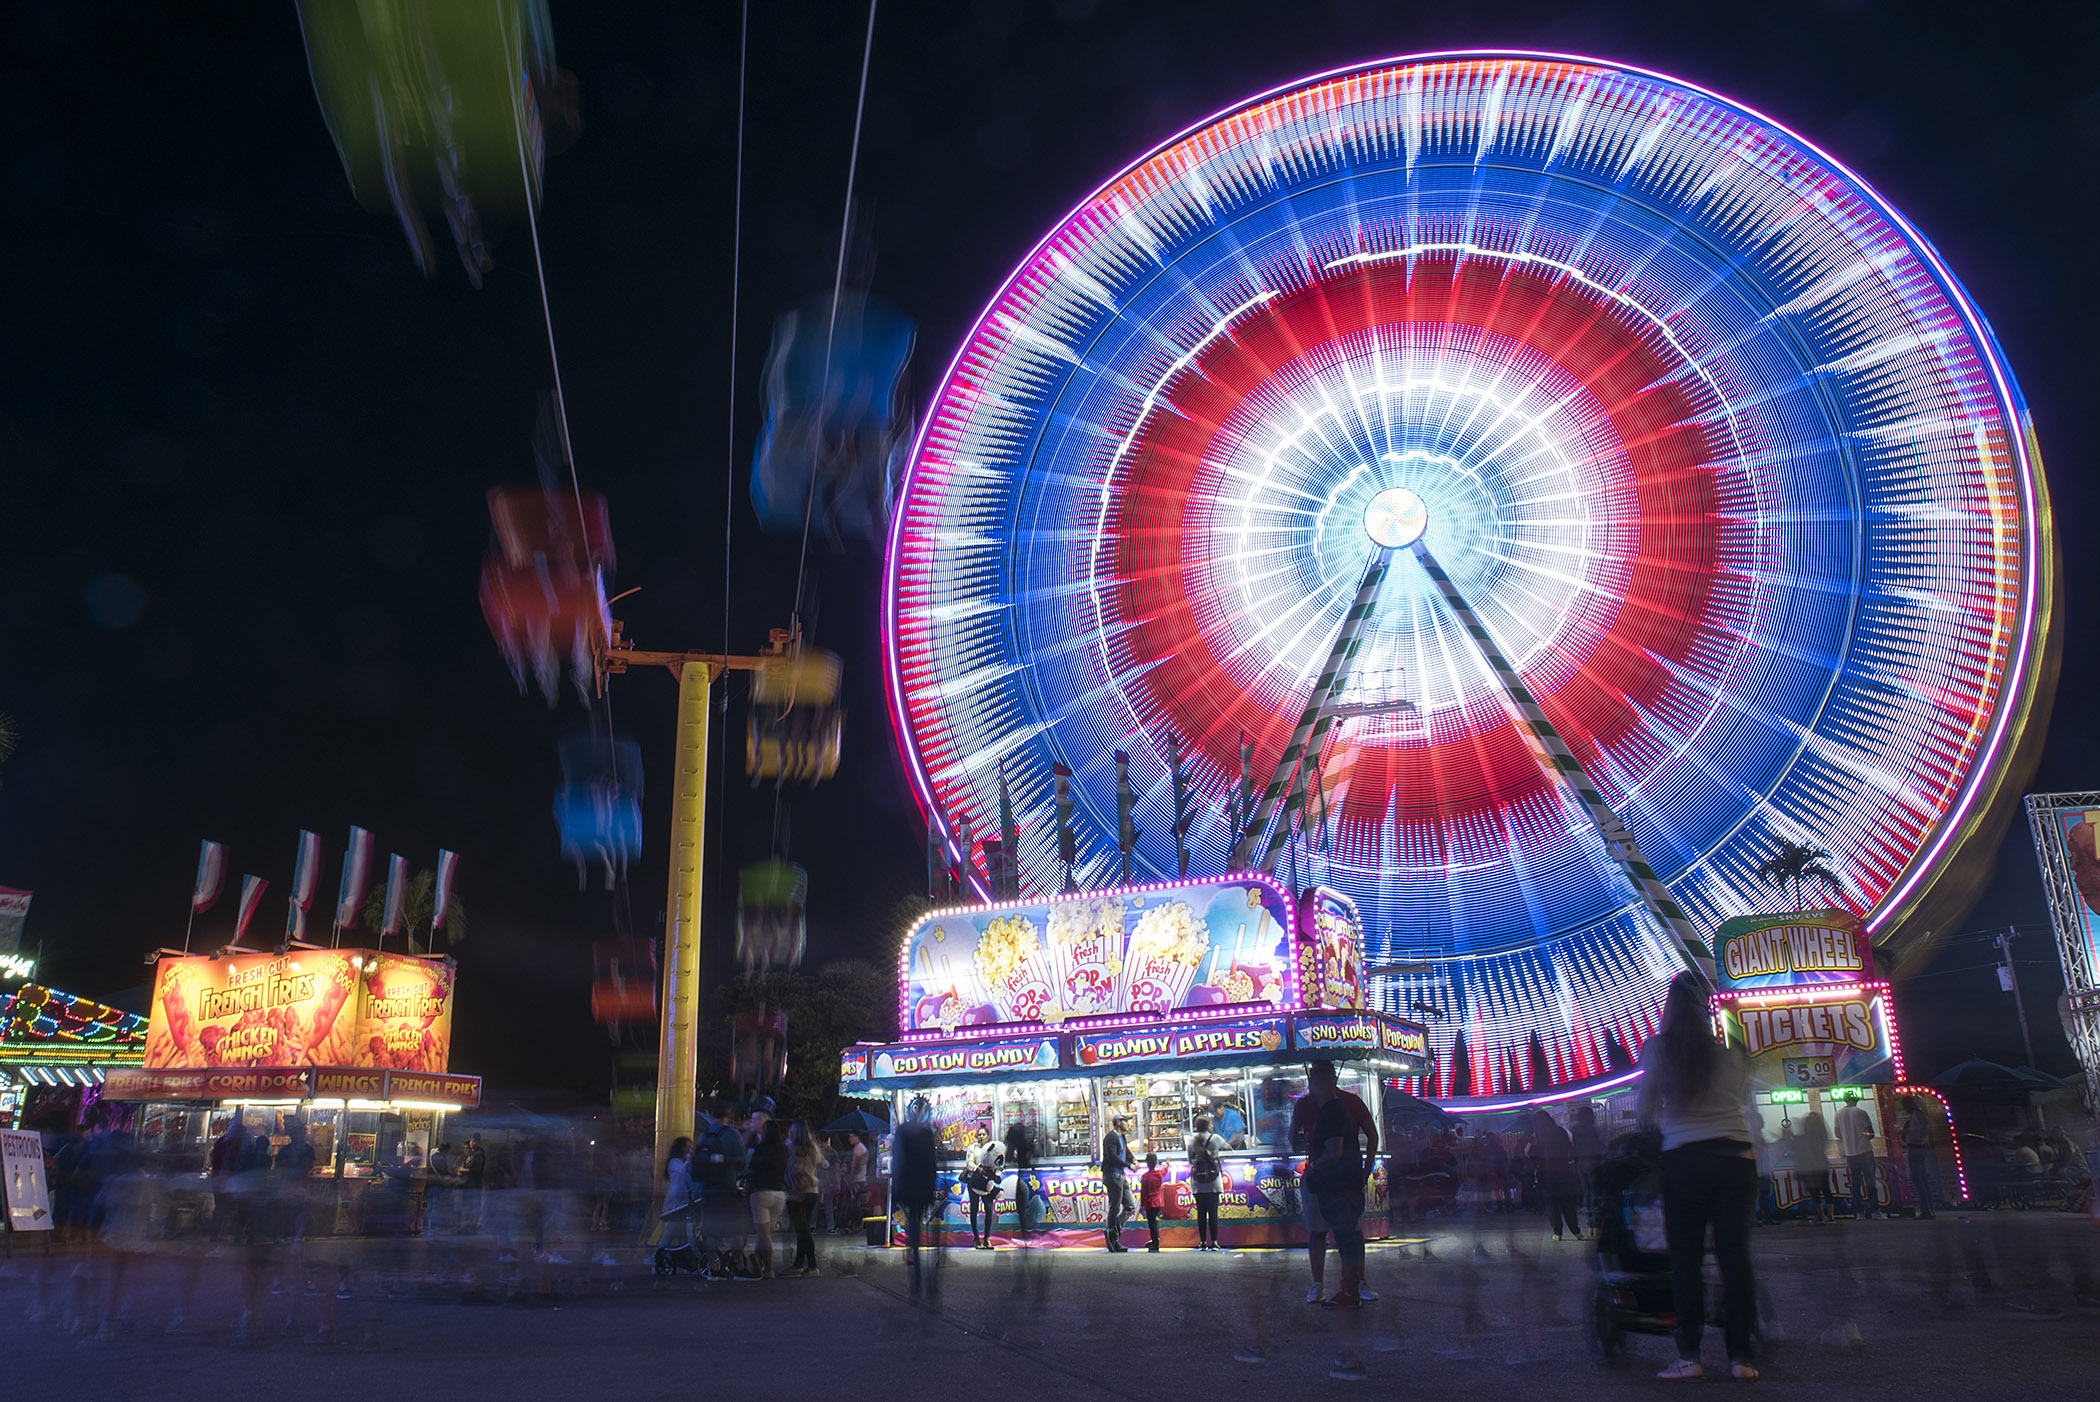 South Florida Fair guests are seen walking underneath the gondola and Ferris wheel rides after dark at the South Florida Fair in West Palm Beach, FL. Thousands of visitors come to the South Florida Fair to play games, eat food and see attractions during the fair's 16-day run.